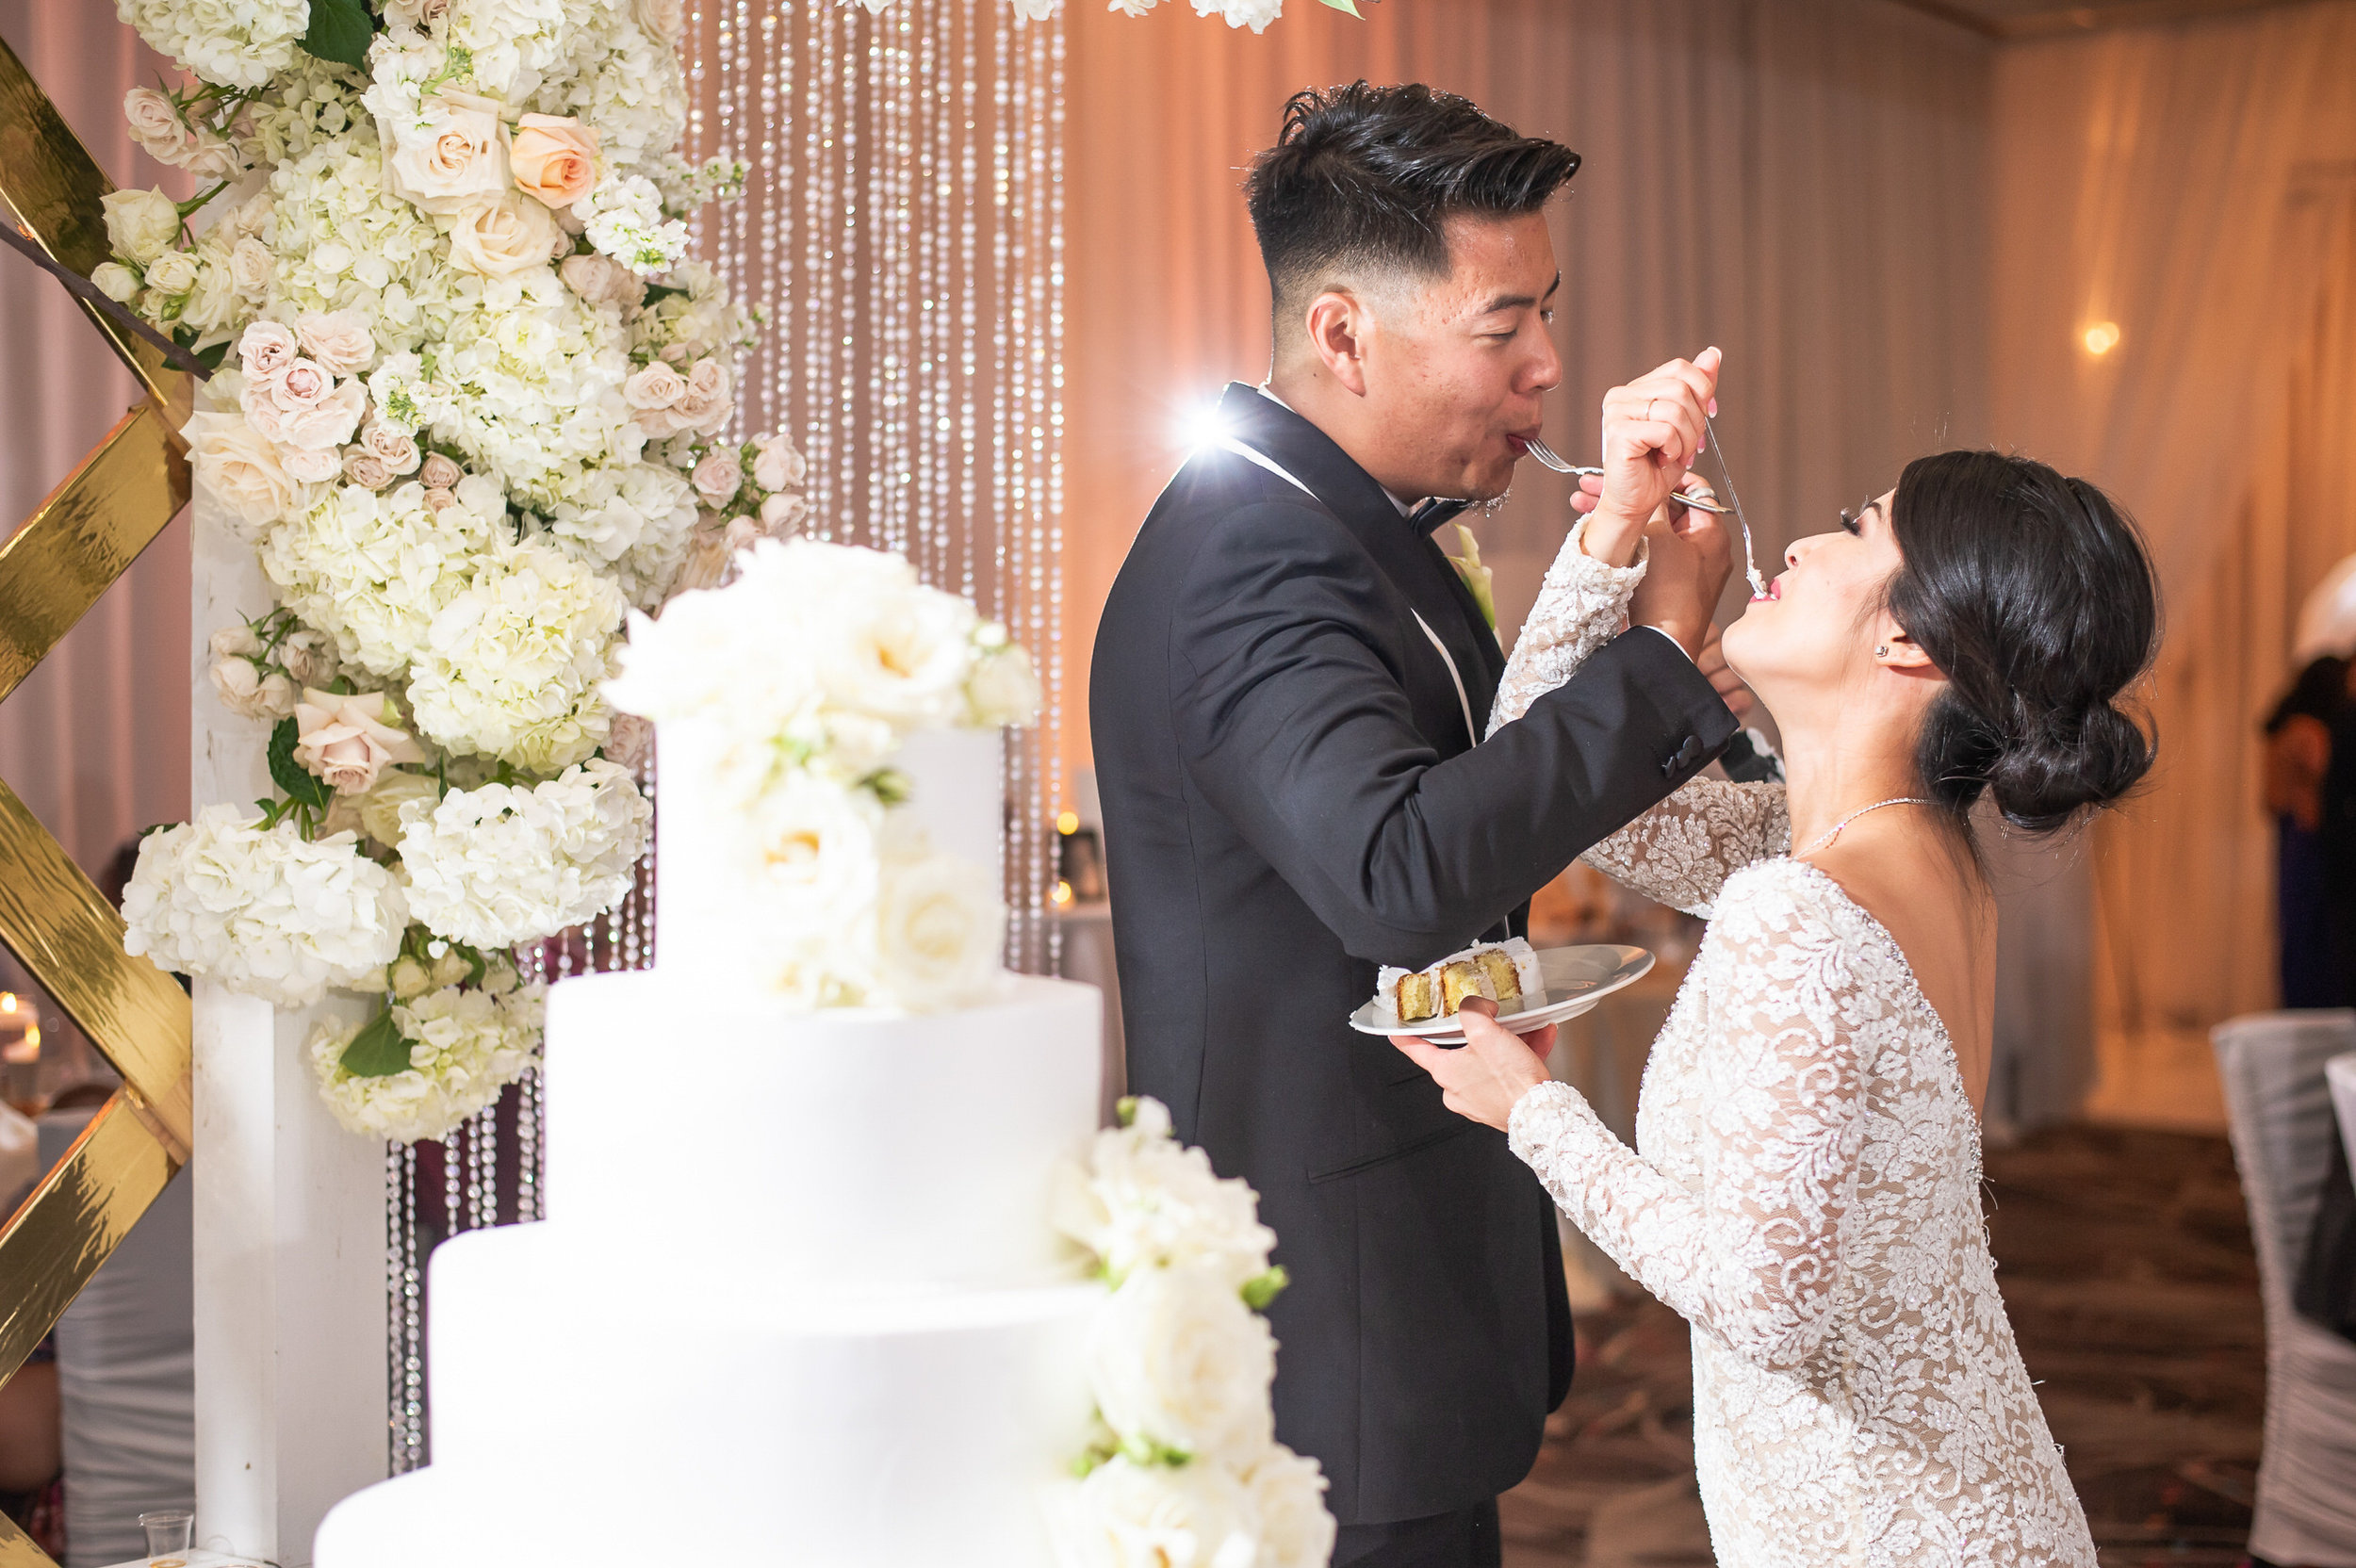 Dream_Wedding_Thanh_Thanh-21339.jpg